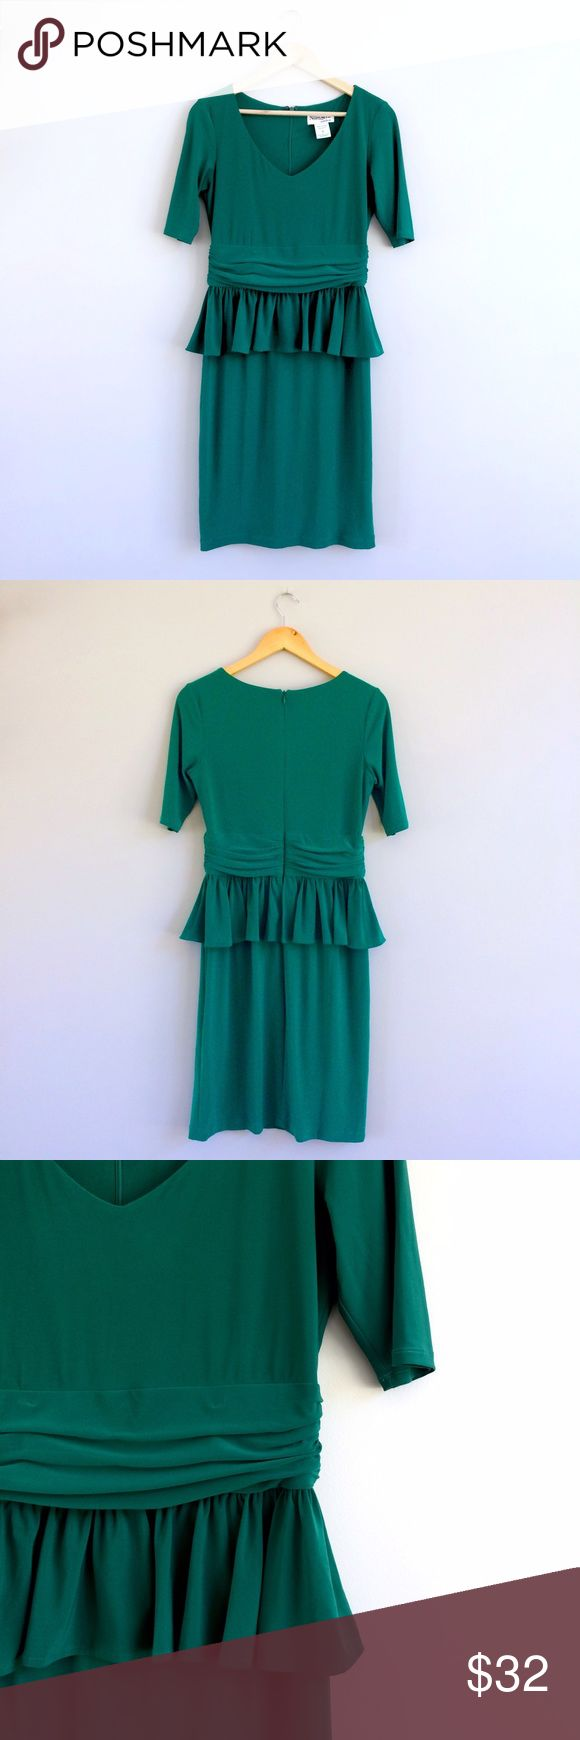 Retro Peplum Fitted Dress So retro, so adorable!! This kelly green peplum fitted v-neck dress will make you feel divine this holiday season! Just add a sparkly statement necklace and some fantastic heels and you're ready to hit the town. Bust: 17in, waist: 14in, shoulder to hem: 39in (knee/midi length on most women). Polyester/spandex blend for the perfect fit! Gently worn, great condition. Dresses Midi